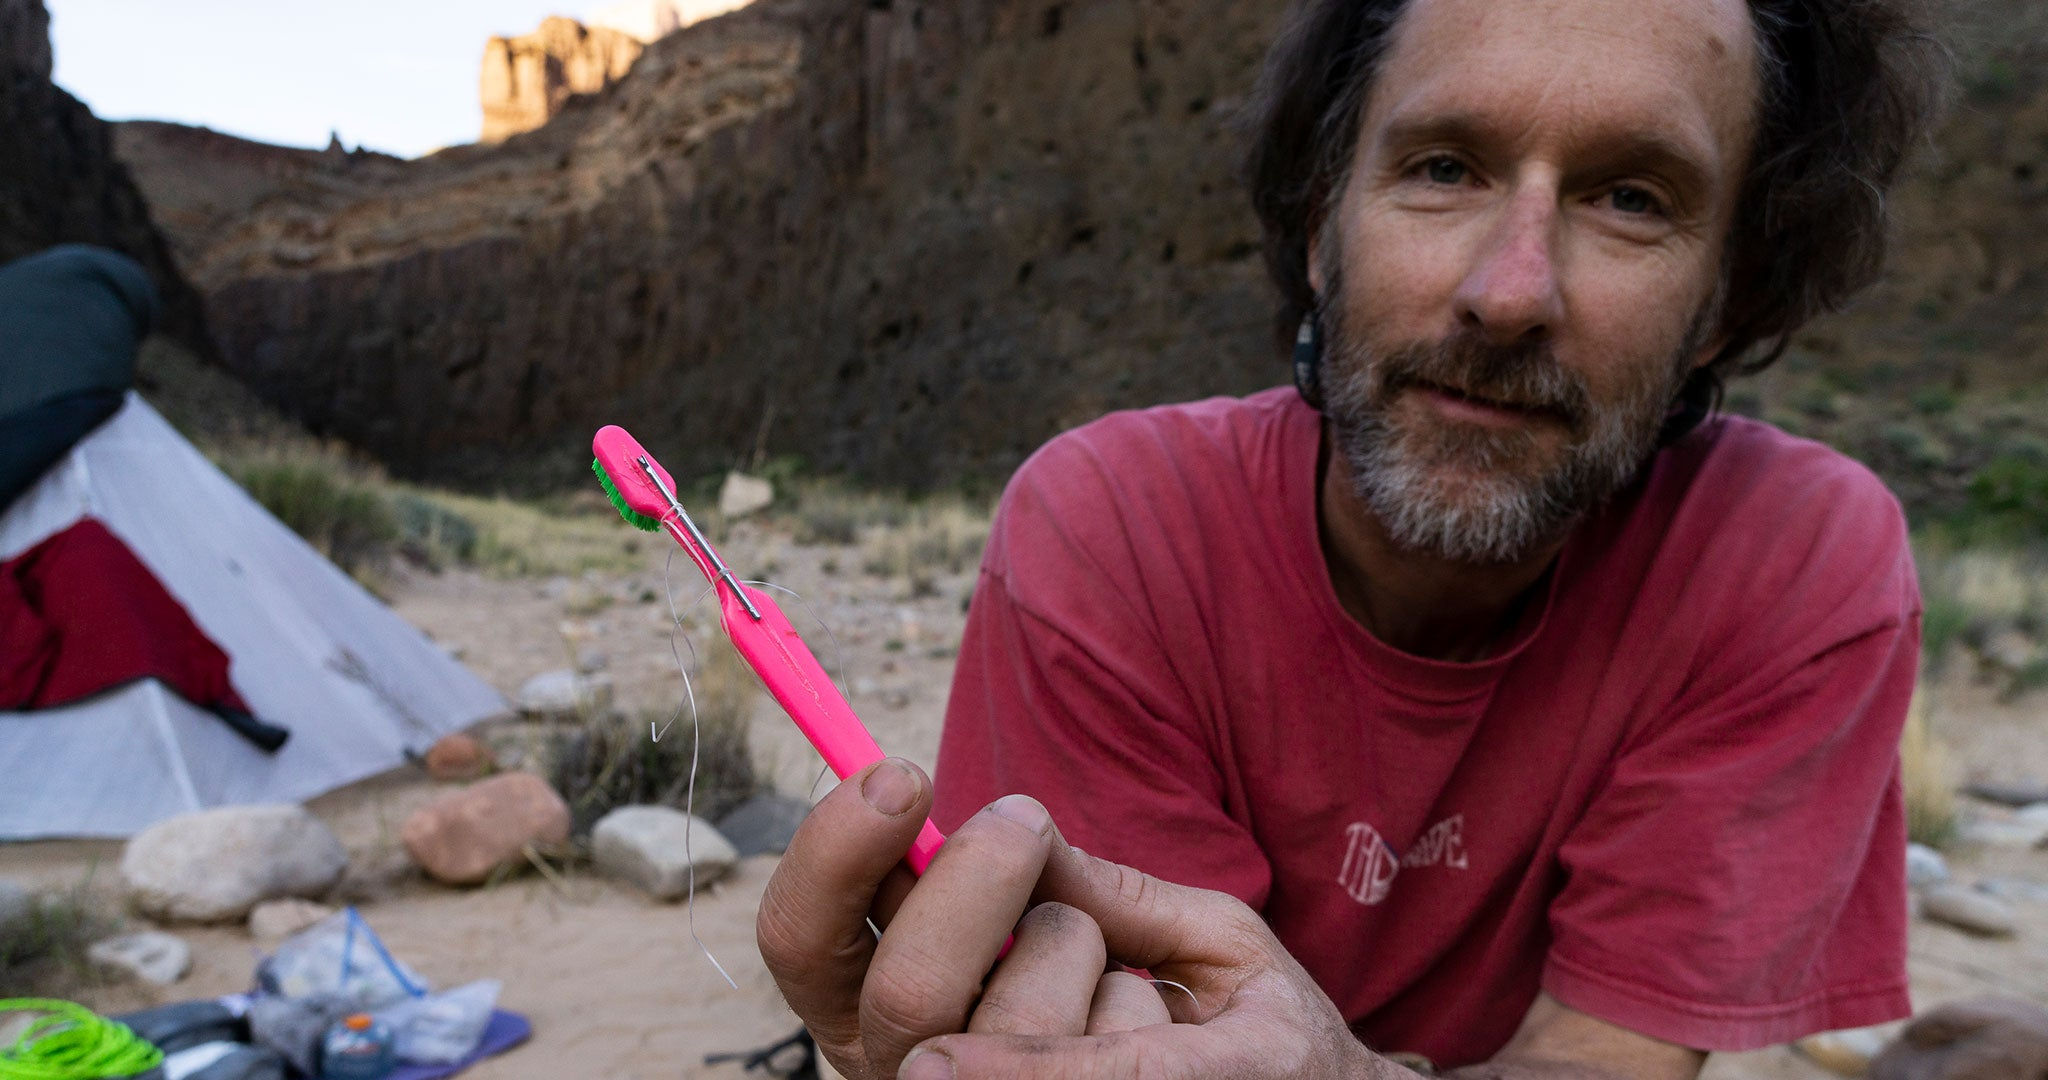 Mike St. Pierre's partner on the Grand Canyon thru hike, Clay Wadman had an unfortunate incident with a rock falling on his gear and smashing his toothbrush, among other things.